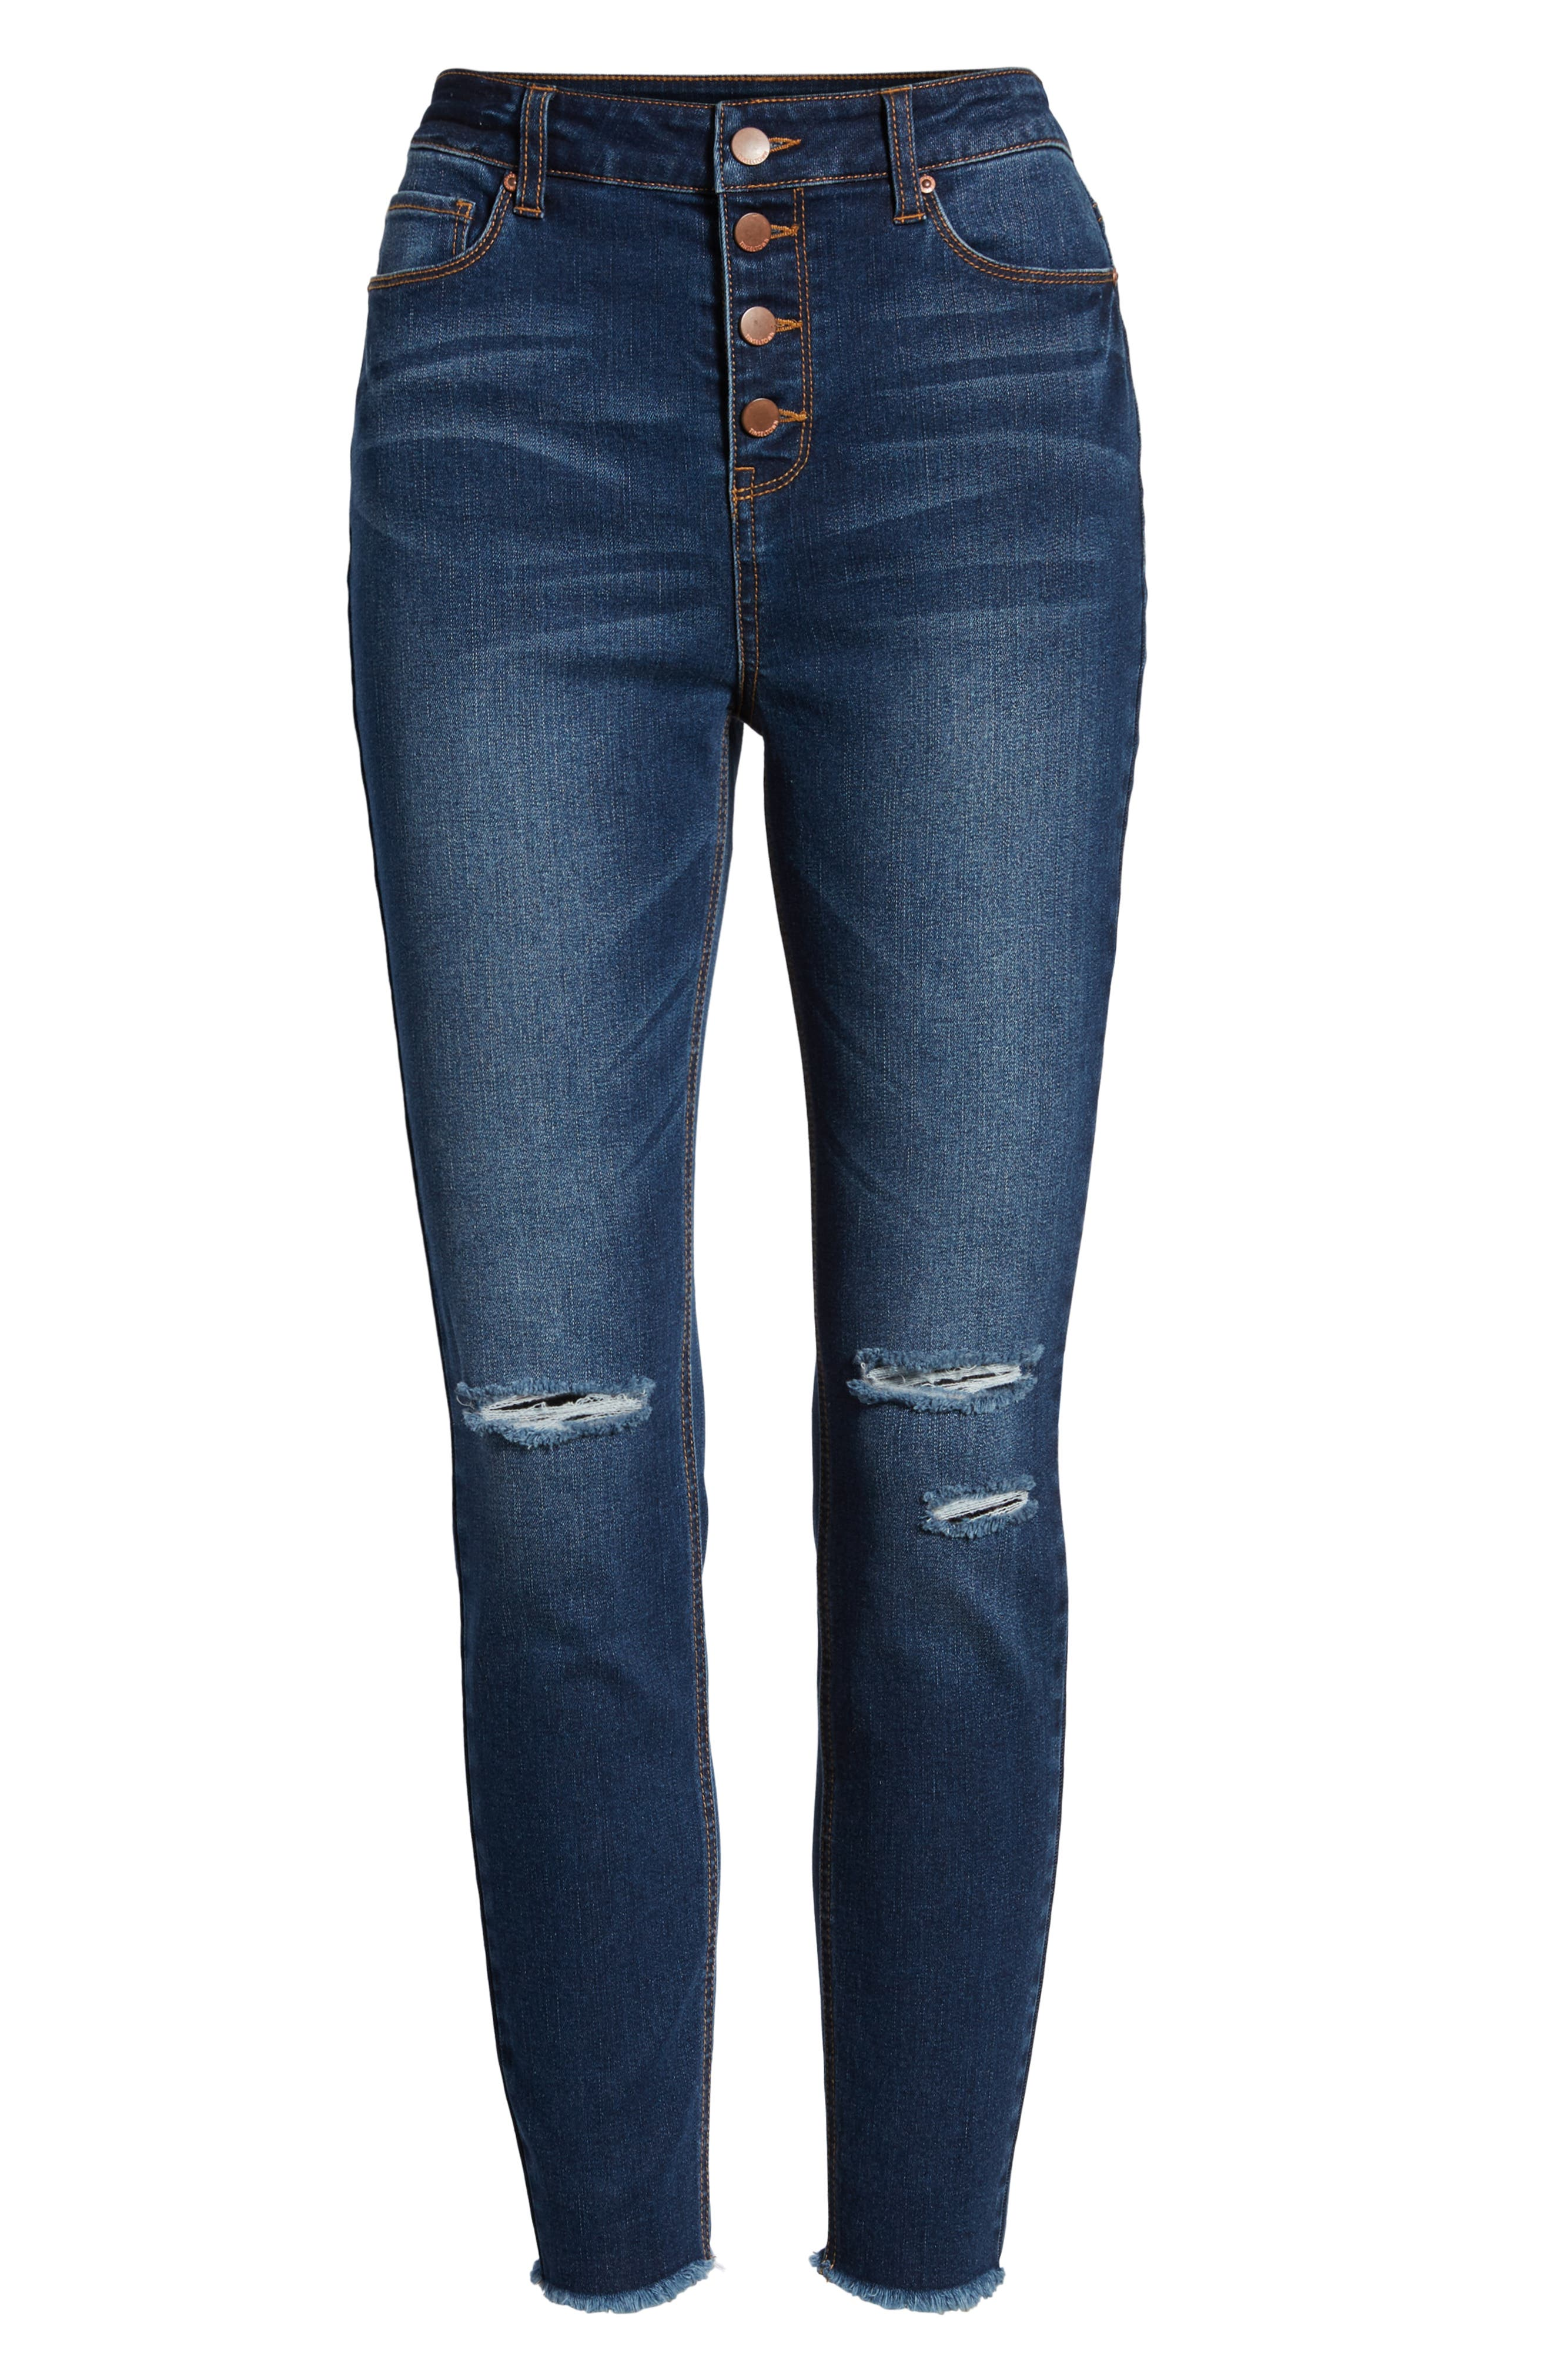 TINSEL, Ripped High Waist Ankle Skinny Jeans, Alternate thumbnail 7, color, DARK WASH